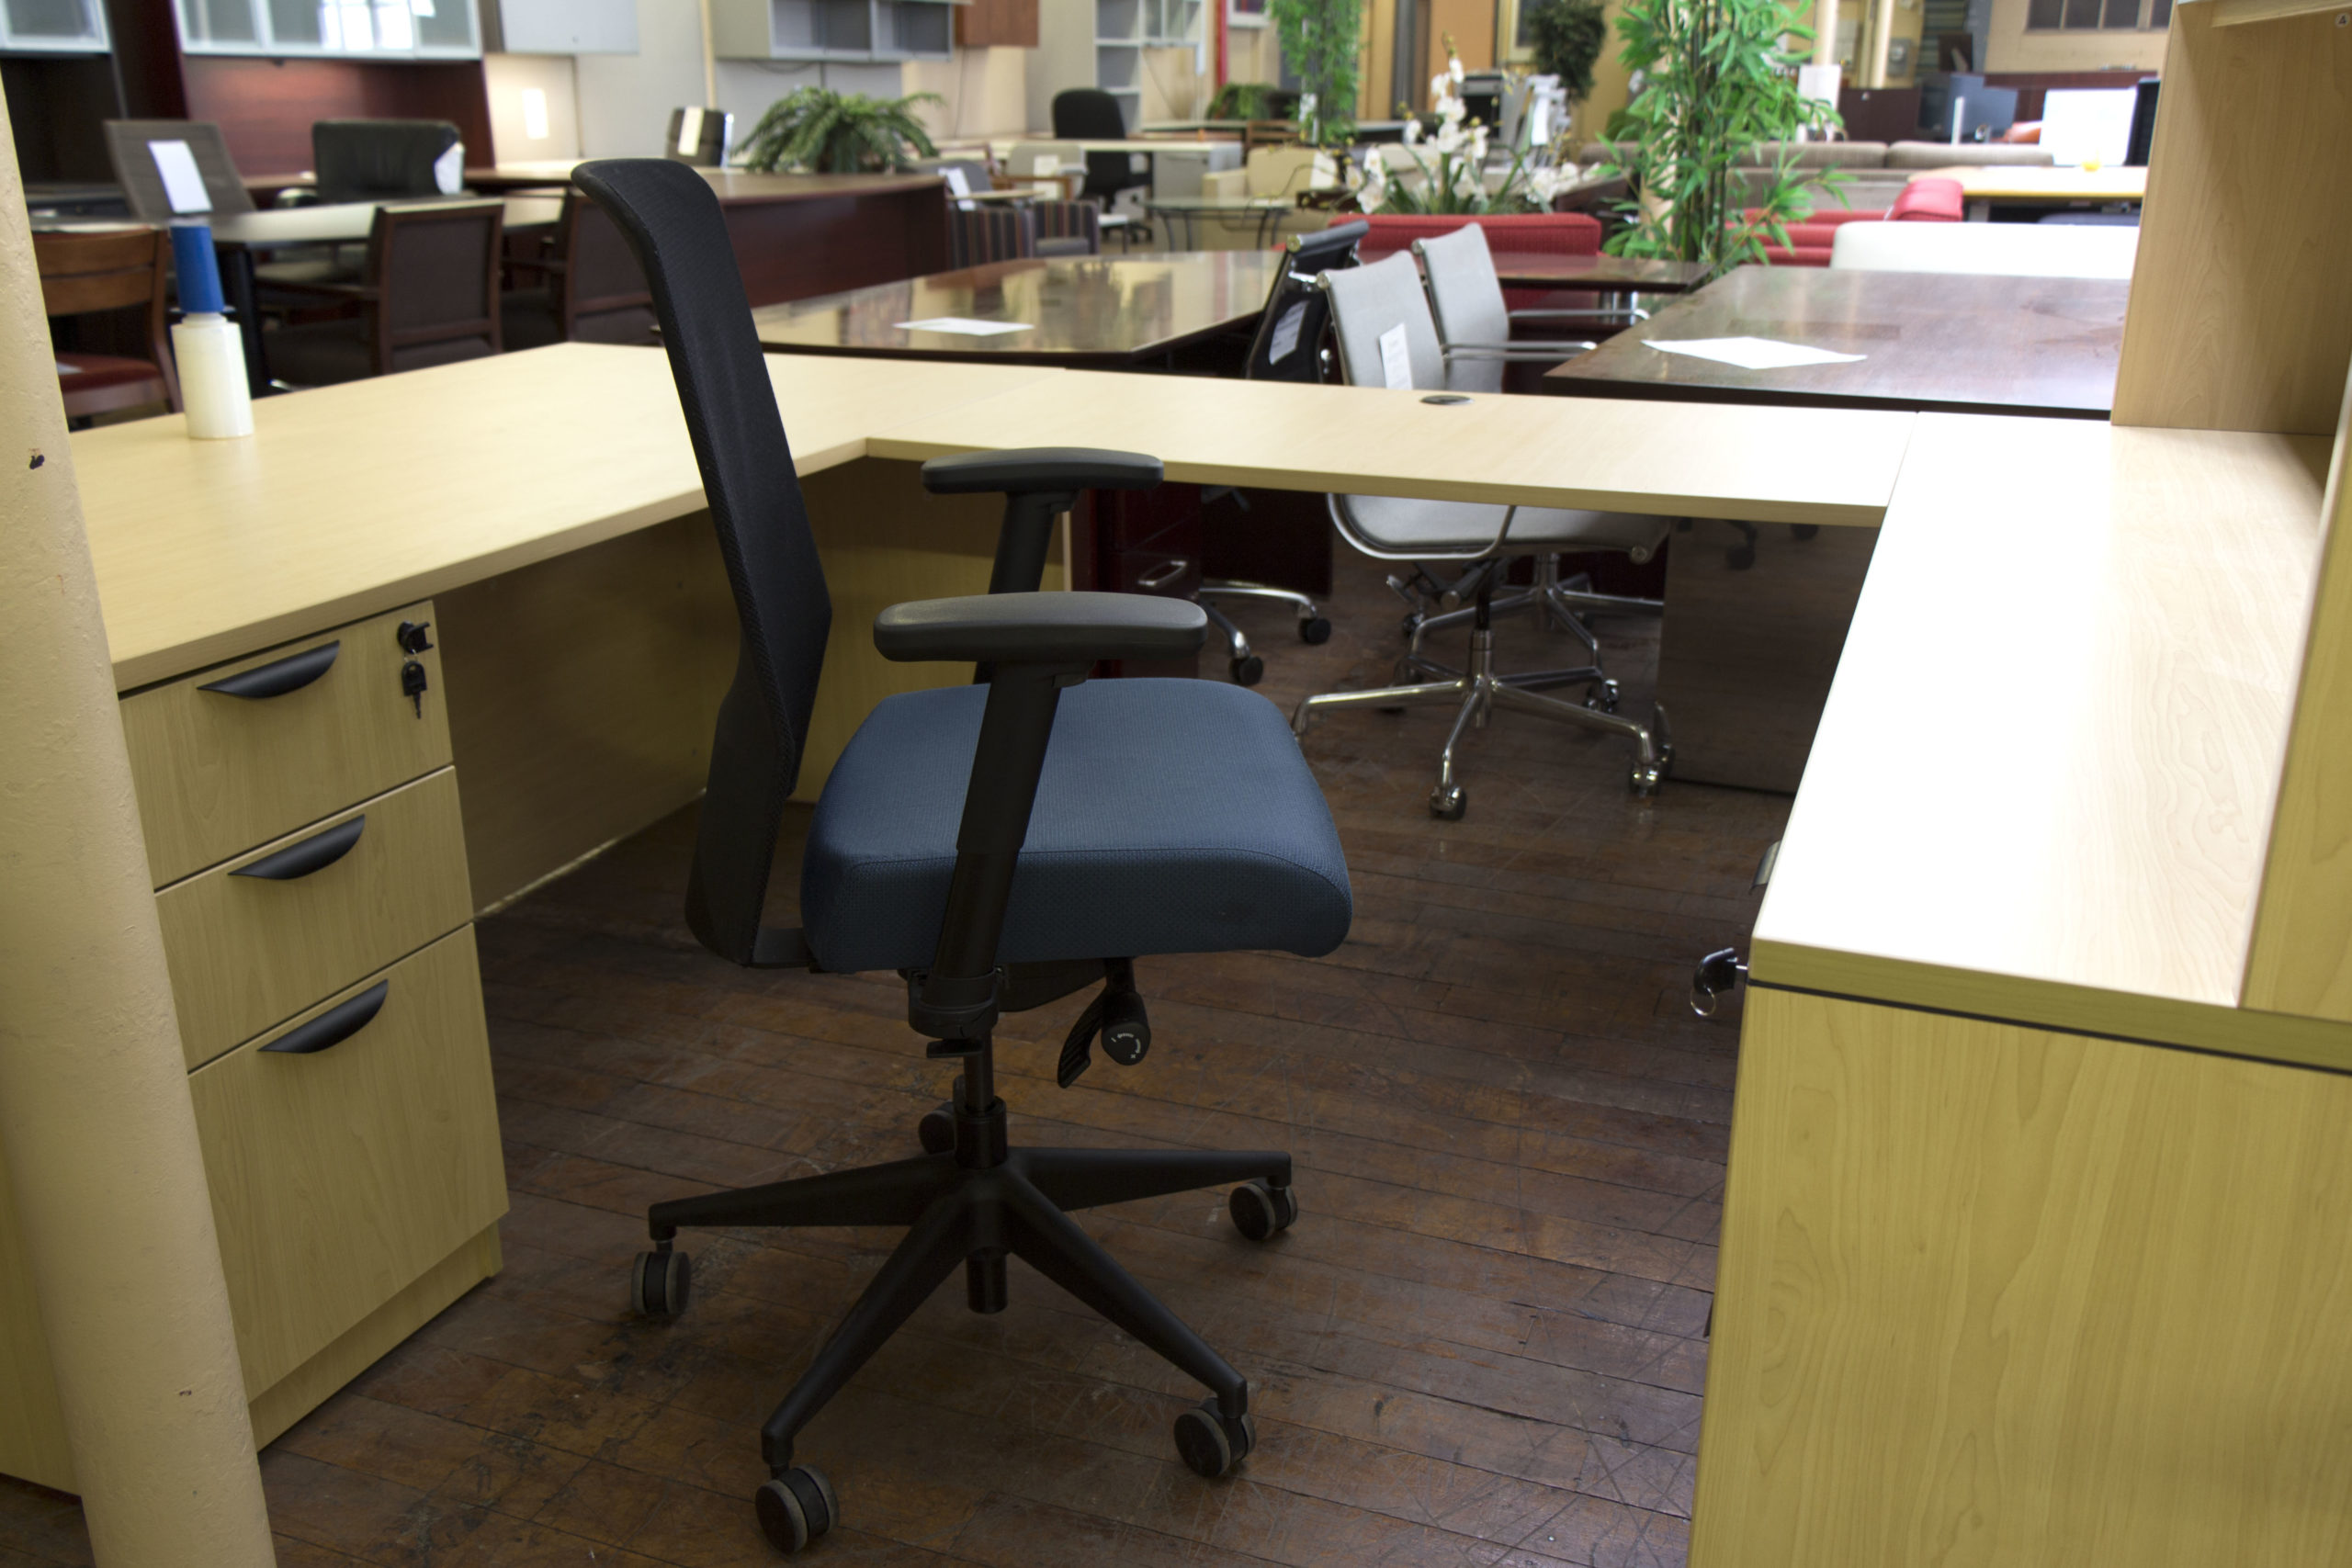 peartreeofficefurniture_peartreeofficefurniture_mg_5533.jpg